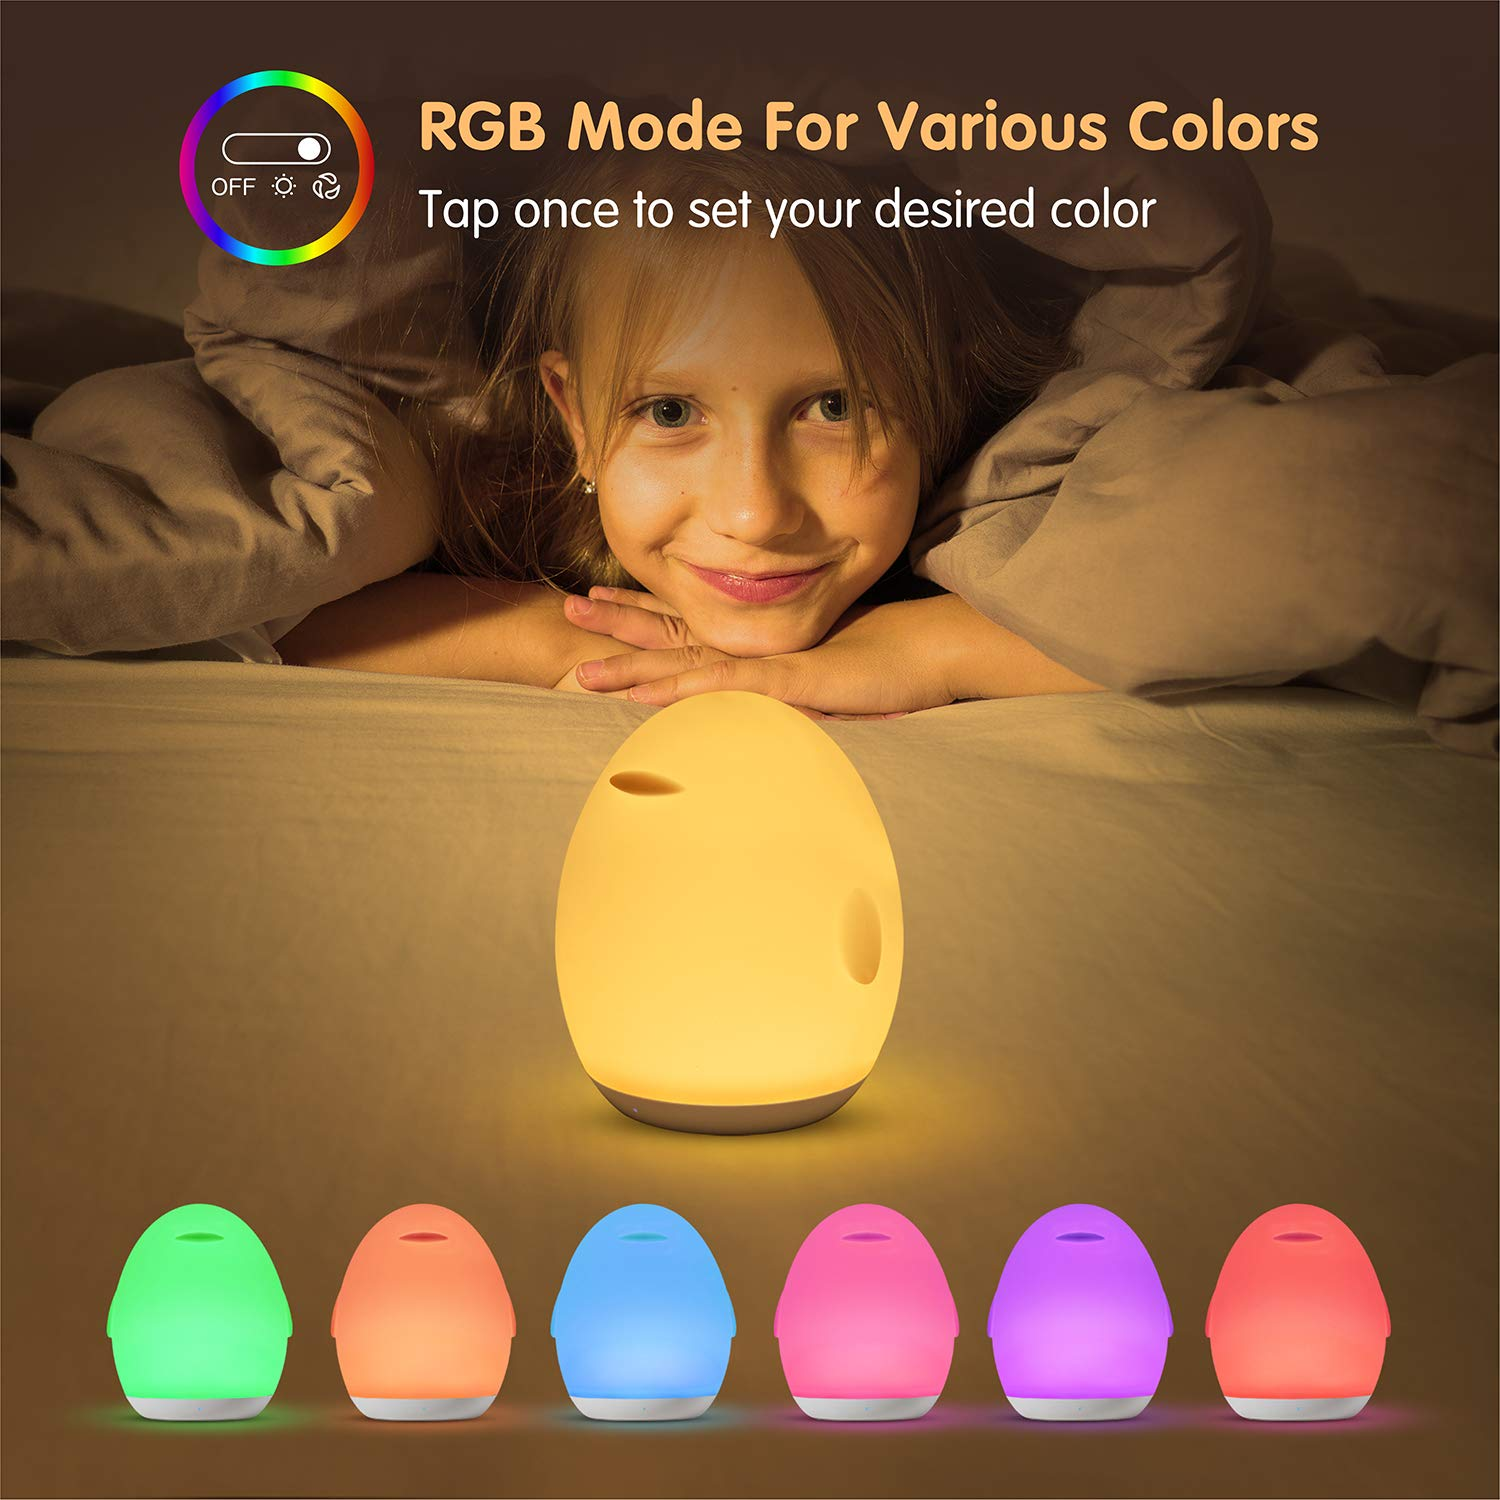 1H Timer Baby Nursery Light Bedside Lamp for Breastfeeding with Dimming Function Up to 100H Rechargeable Night Light with Eye Caring LED Touch Control Night Light for Kids Color Changing Mode